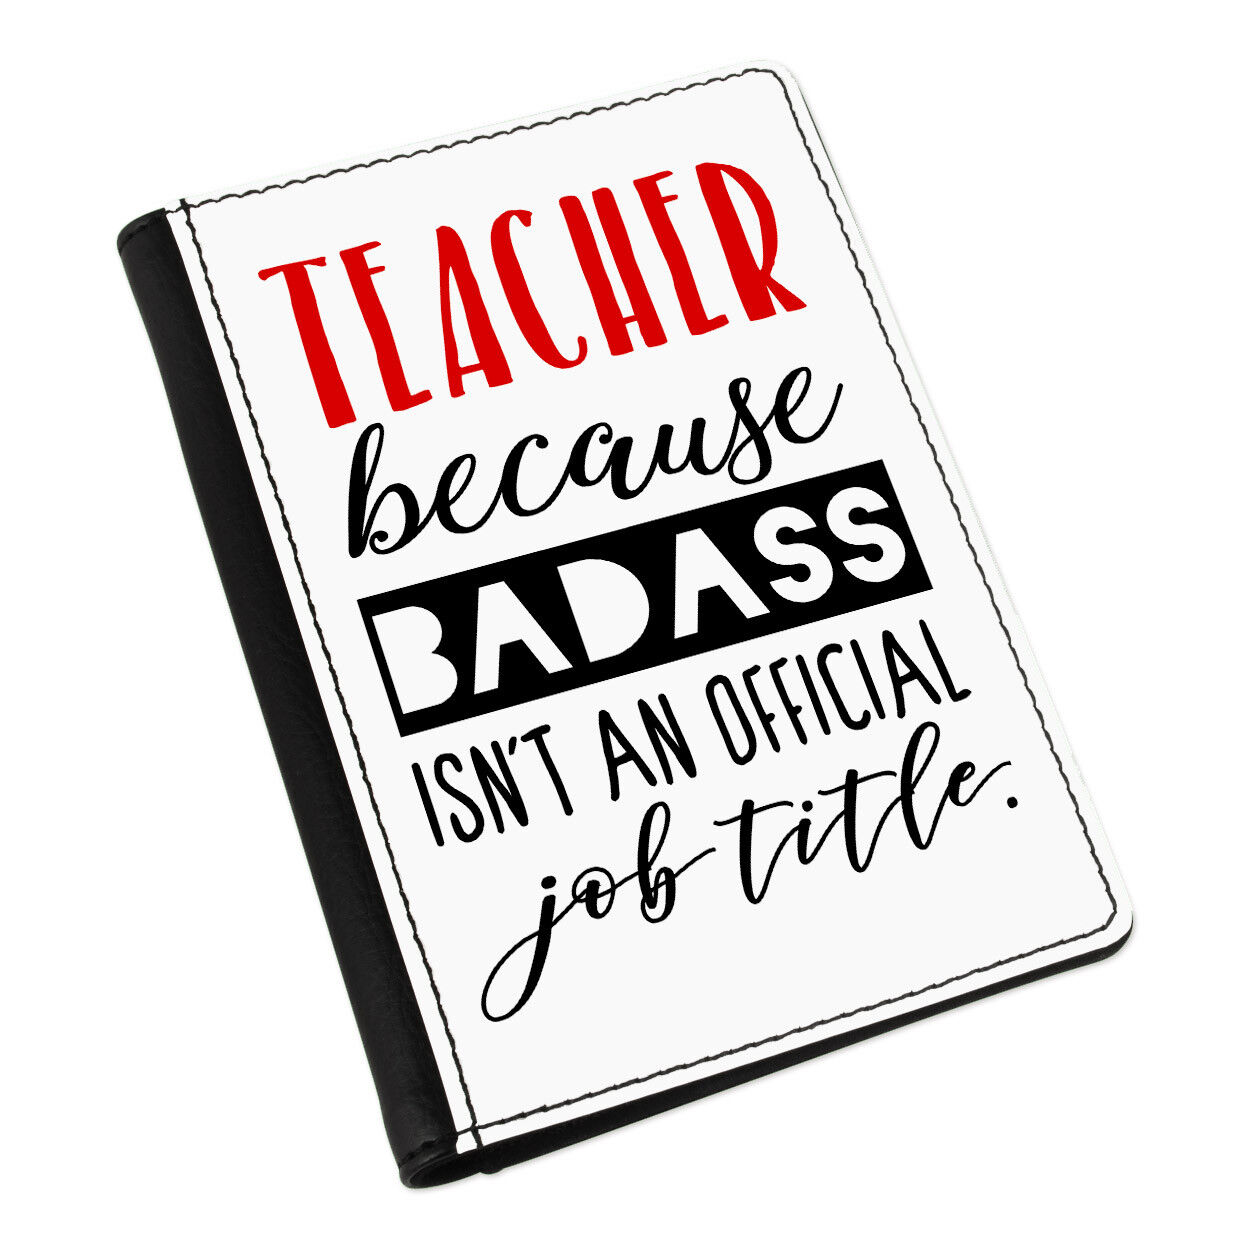 Teacher Badass isn 't à Offical Job Title Passport Passport Passport Holder Cover Case Wallet 6ecbb2